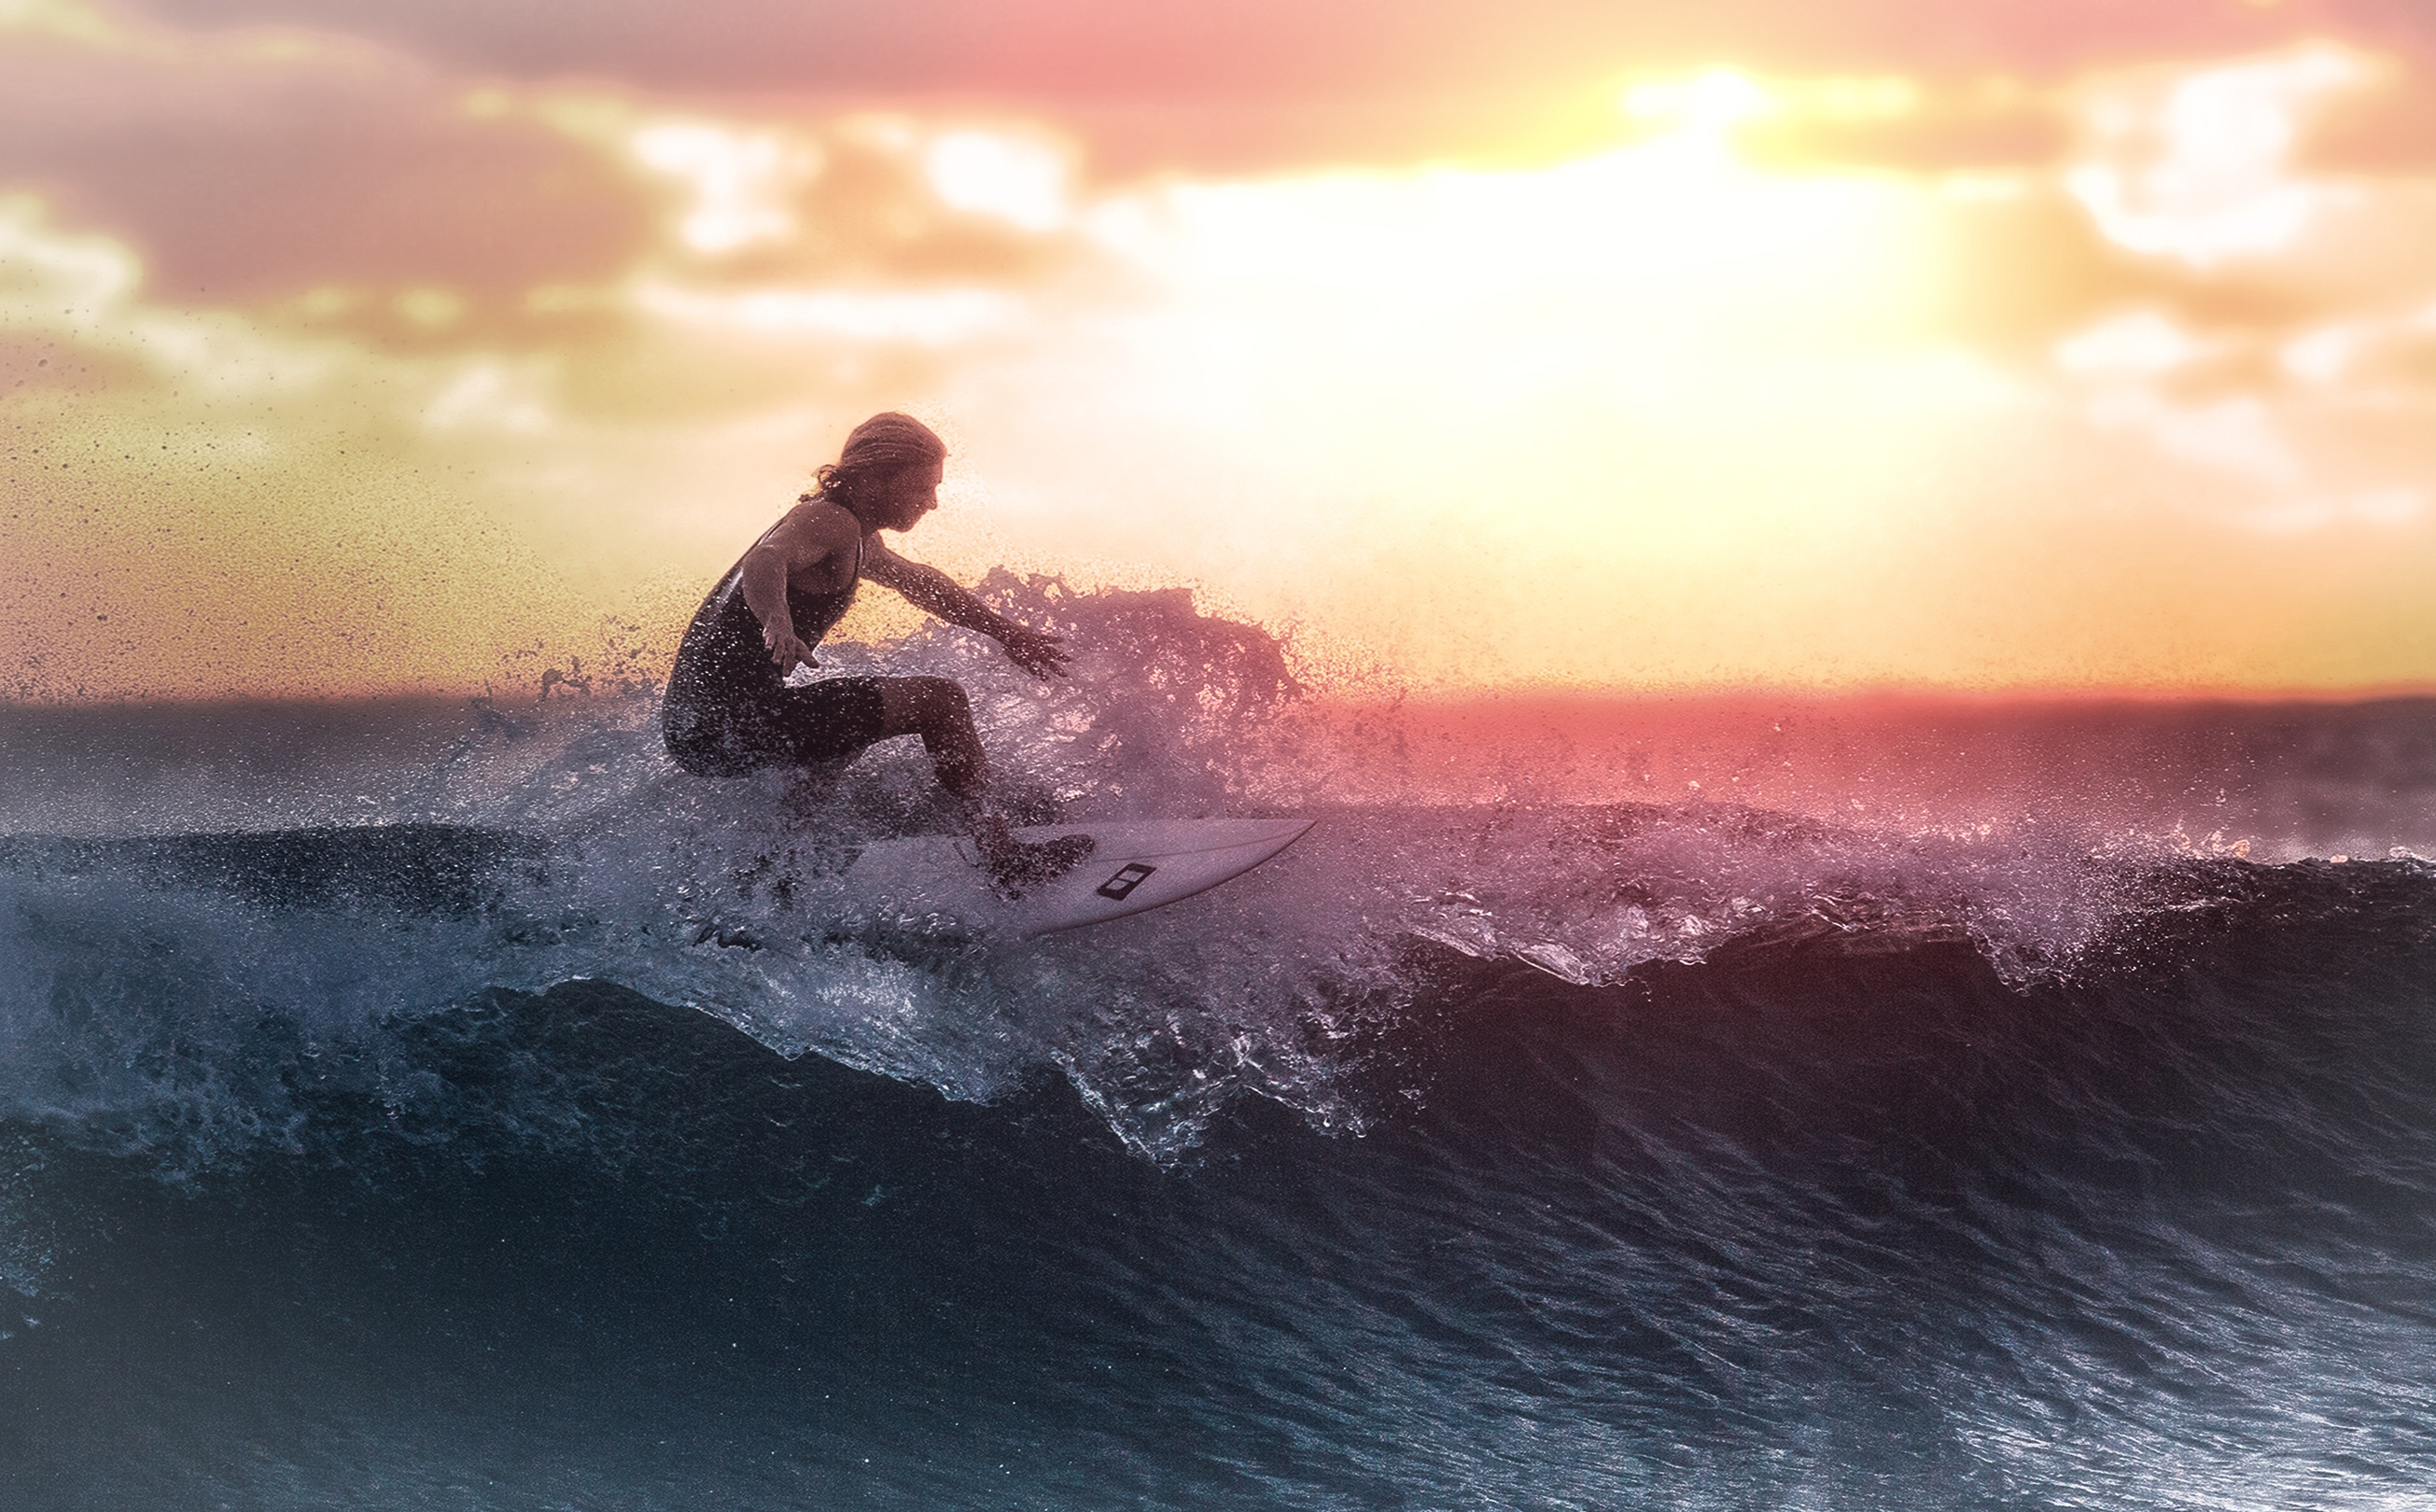 Surfer at Sunset, Action, Summer, Power, Recreation, HQ Photo